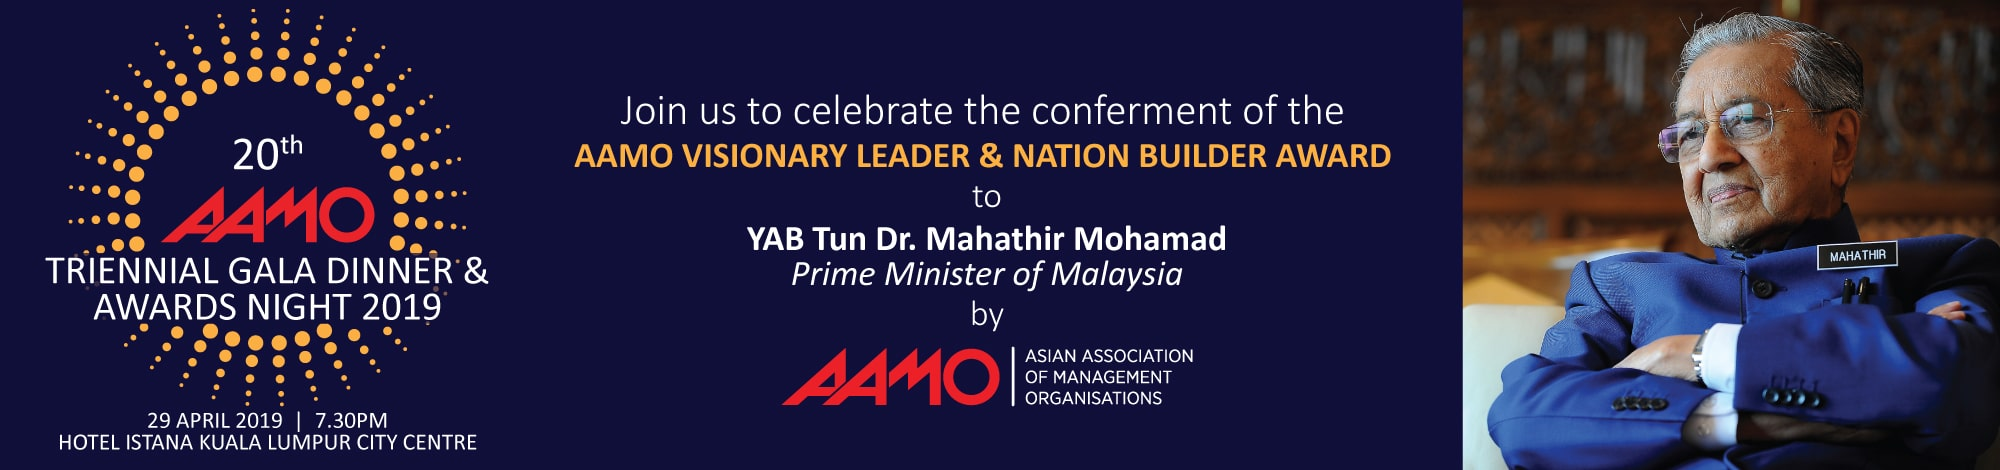 Facebook-Marketing-20th-AAMO-Triennial-Conference-2019-Kuala-Lumpur_B-Website-2000px-X-470